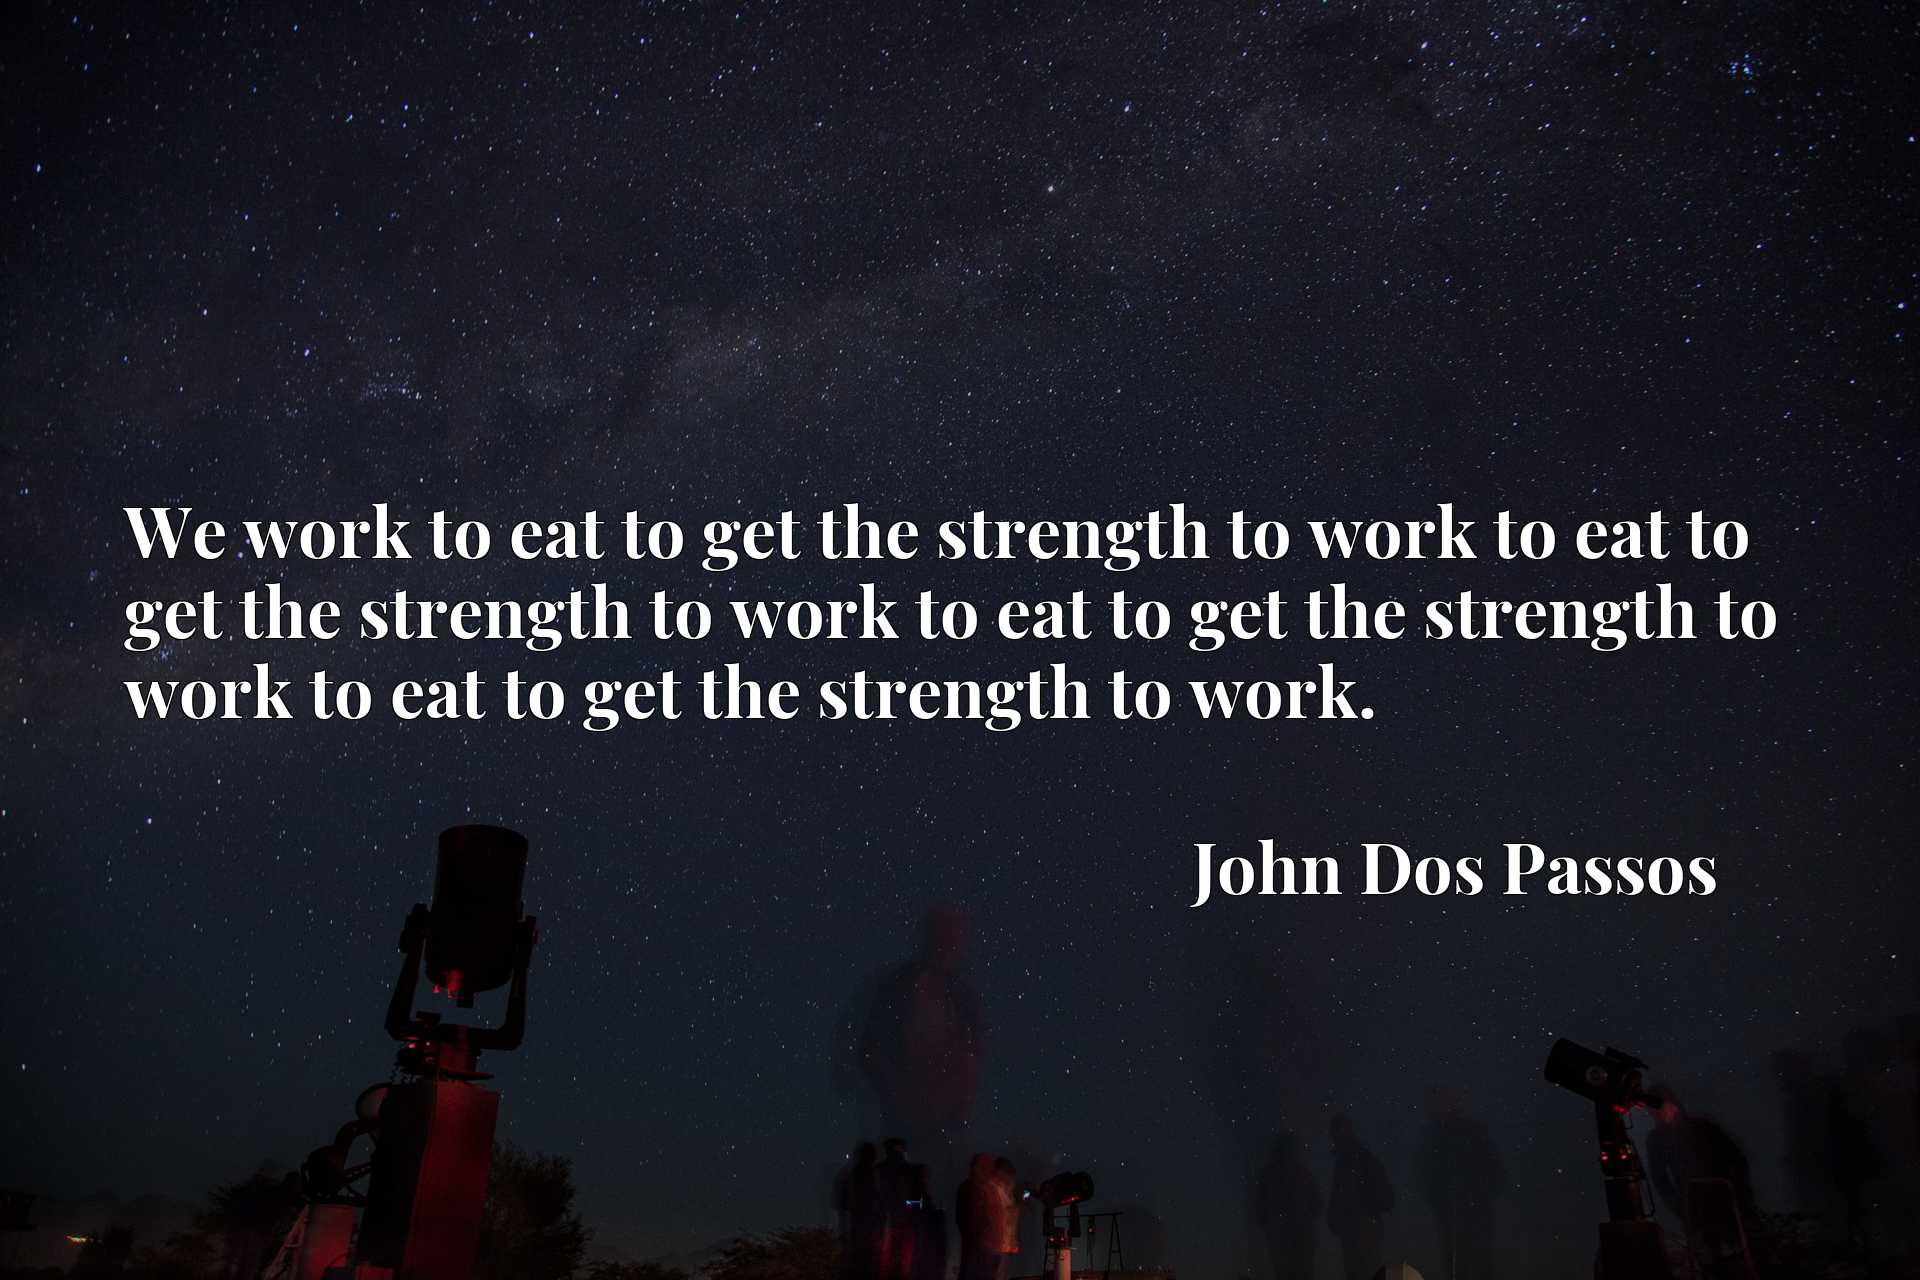 We work to eat to get the strength to work to eat to get the strength to work to eat to get the strength to work to eat to get the strength to work.